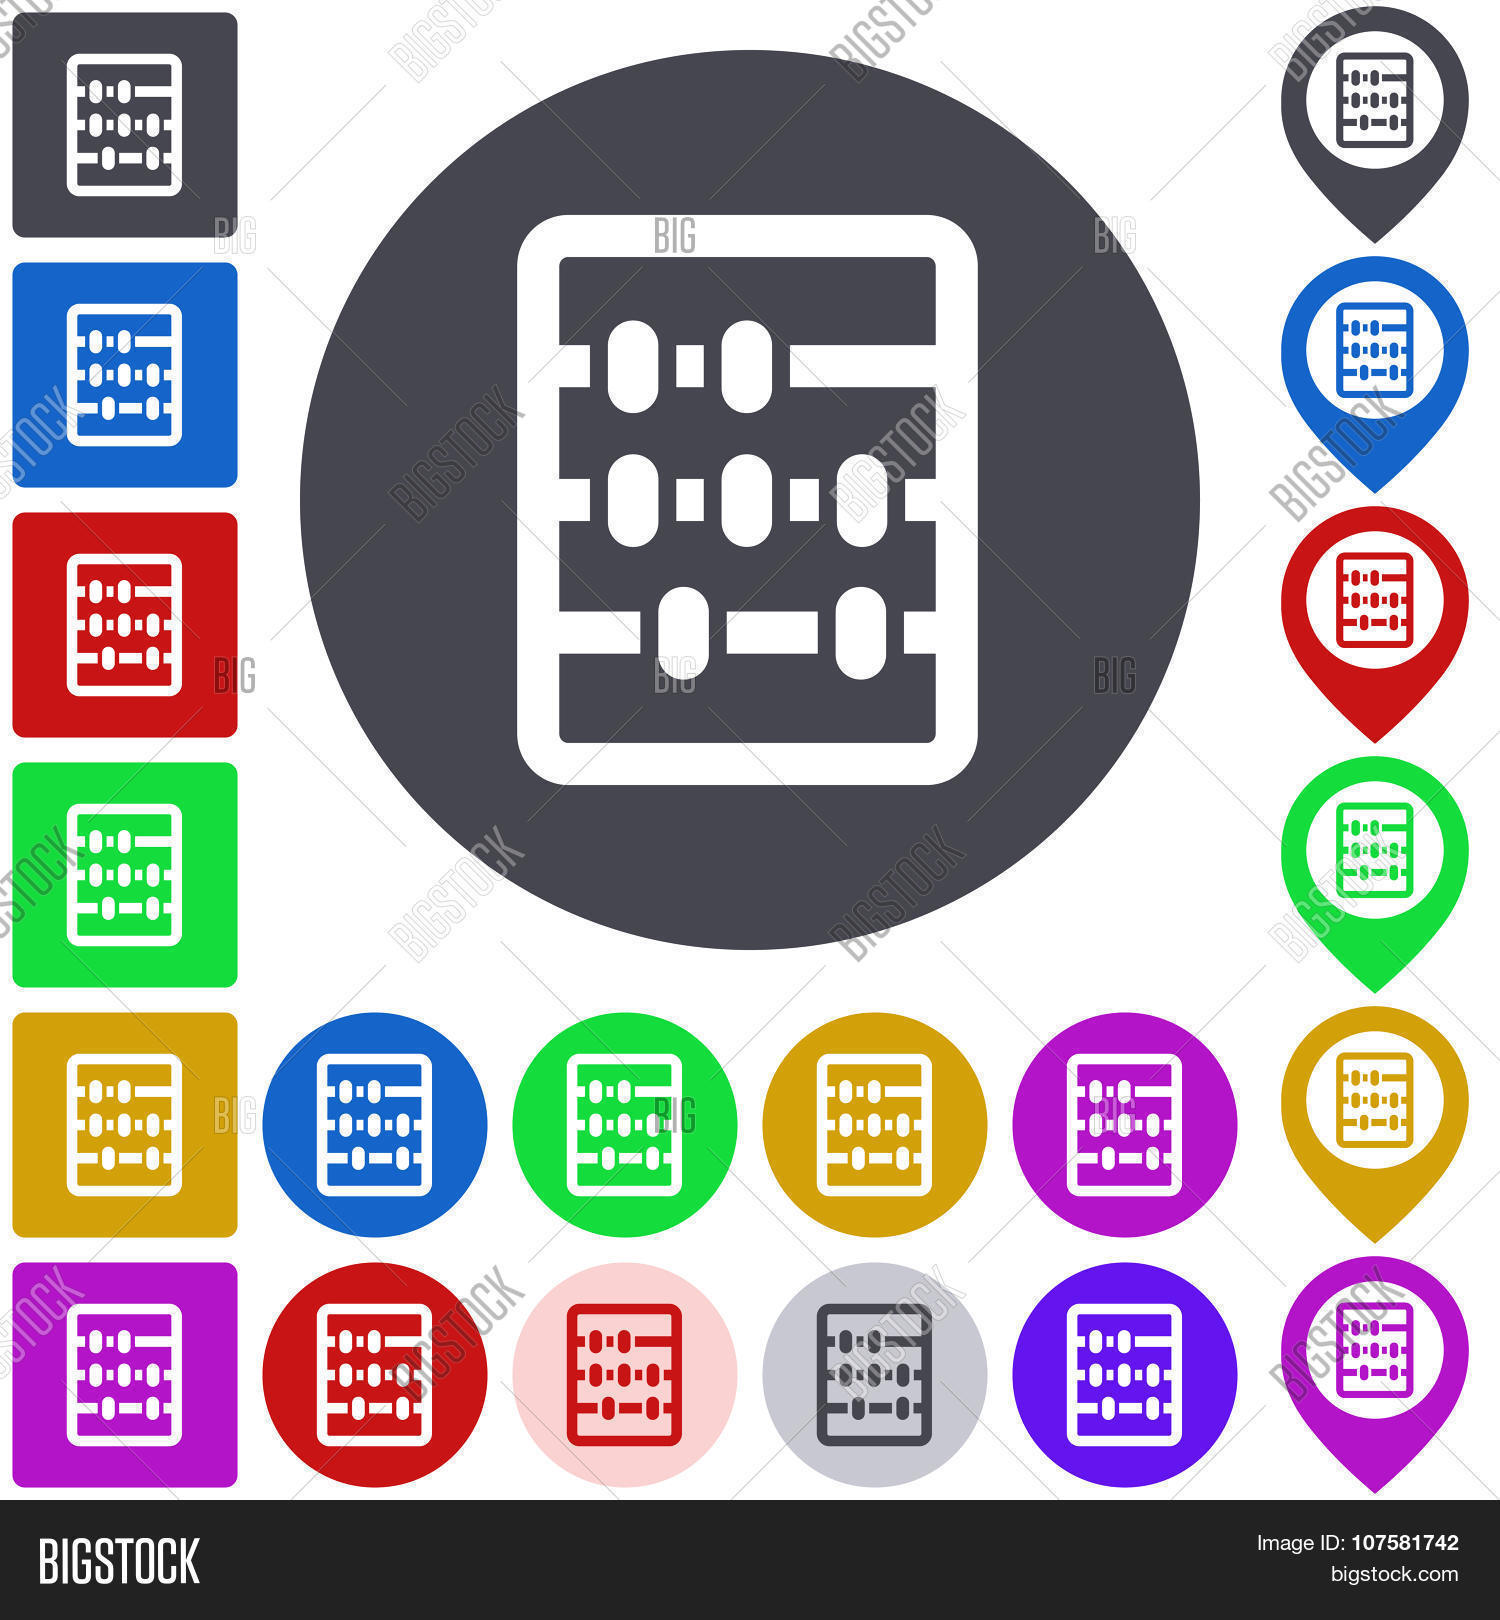 abacus,abstract,accounting,add,addition,app,arithmetic,button,collection,colorful,concept,count,design,element,flat,graphic,icon,label,logo,mark,math,mathematical,mathematics,panel,pictogram,pin,pointer,seal,set,shape,sign,square,stamp,substraction,symbol,token,tool,ui,vector,web